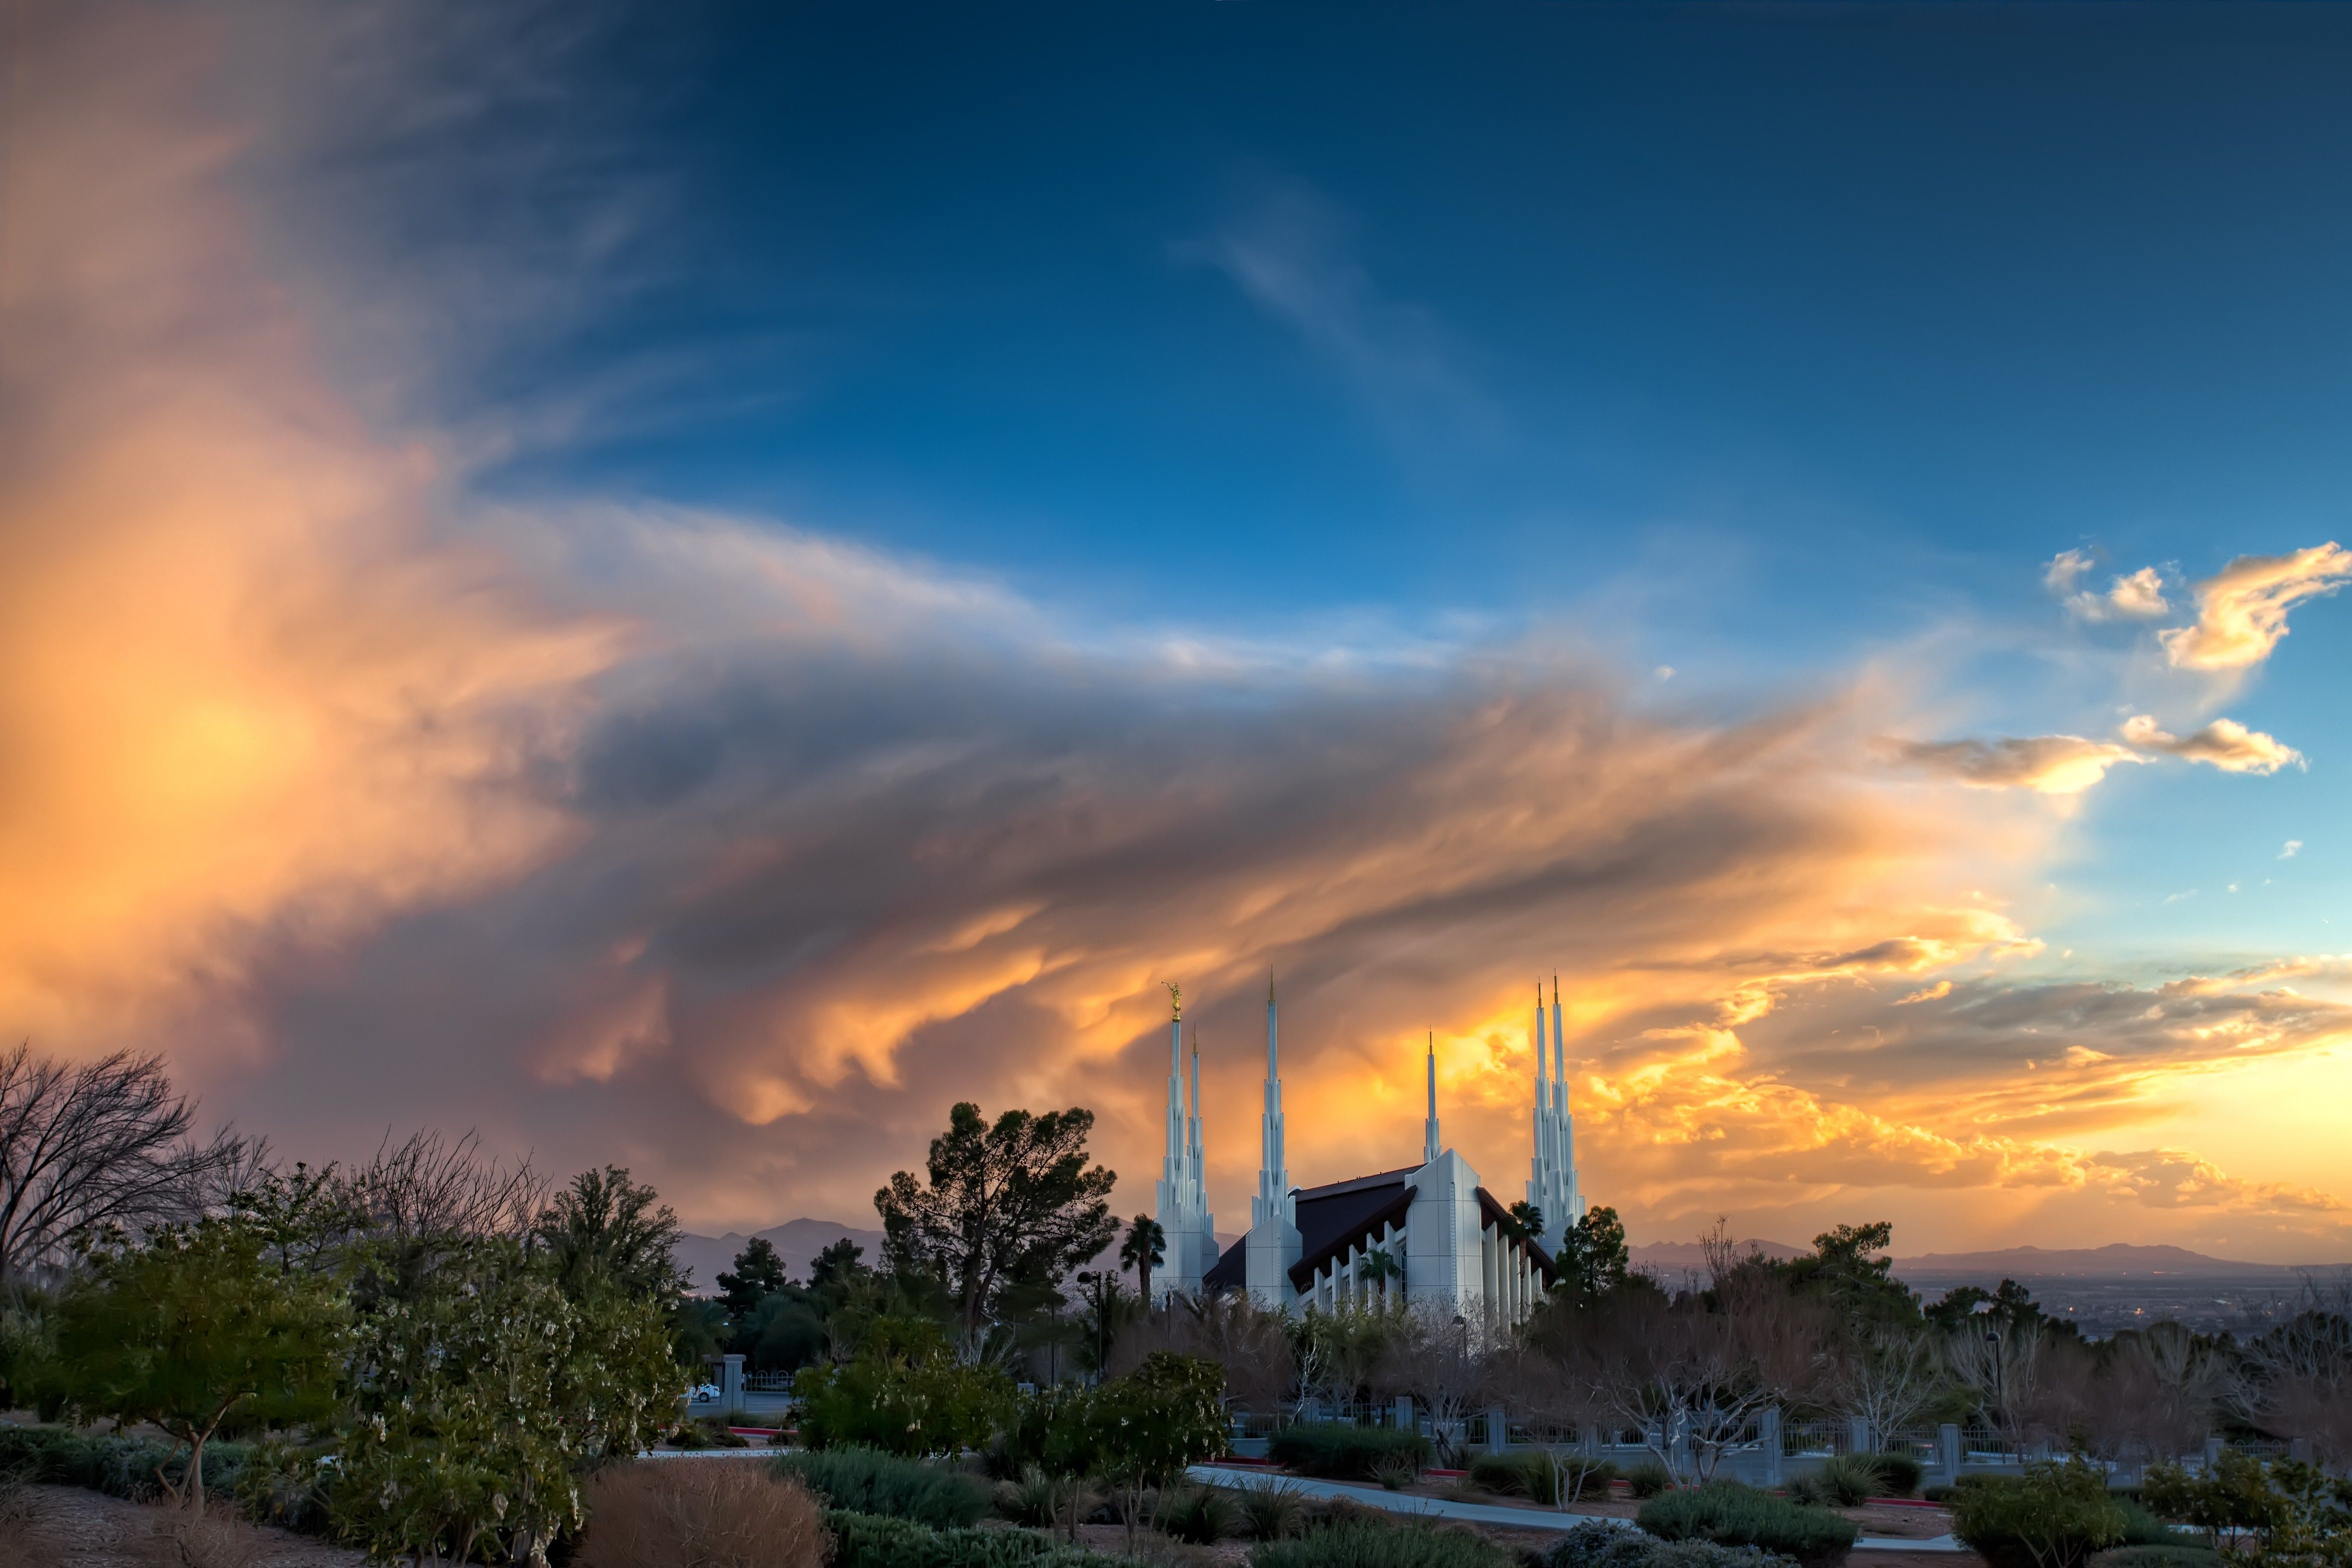 The Las Vegas Nevada Temple at sunset, including scenery.